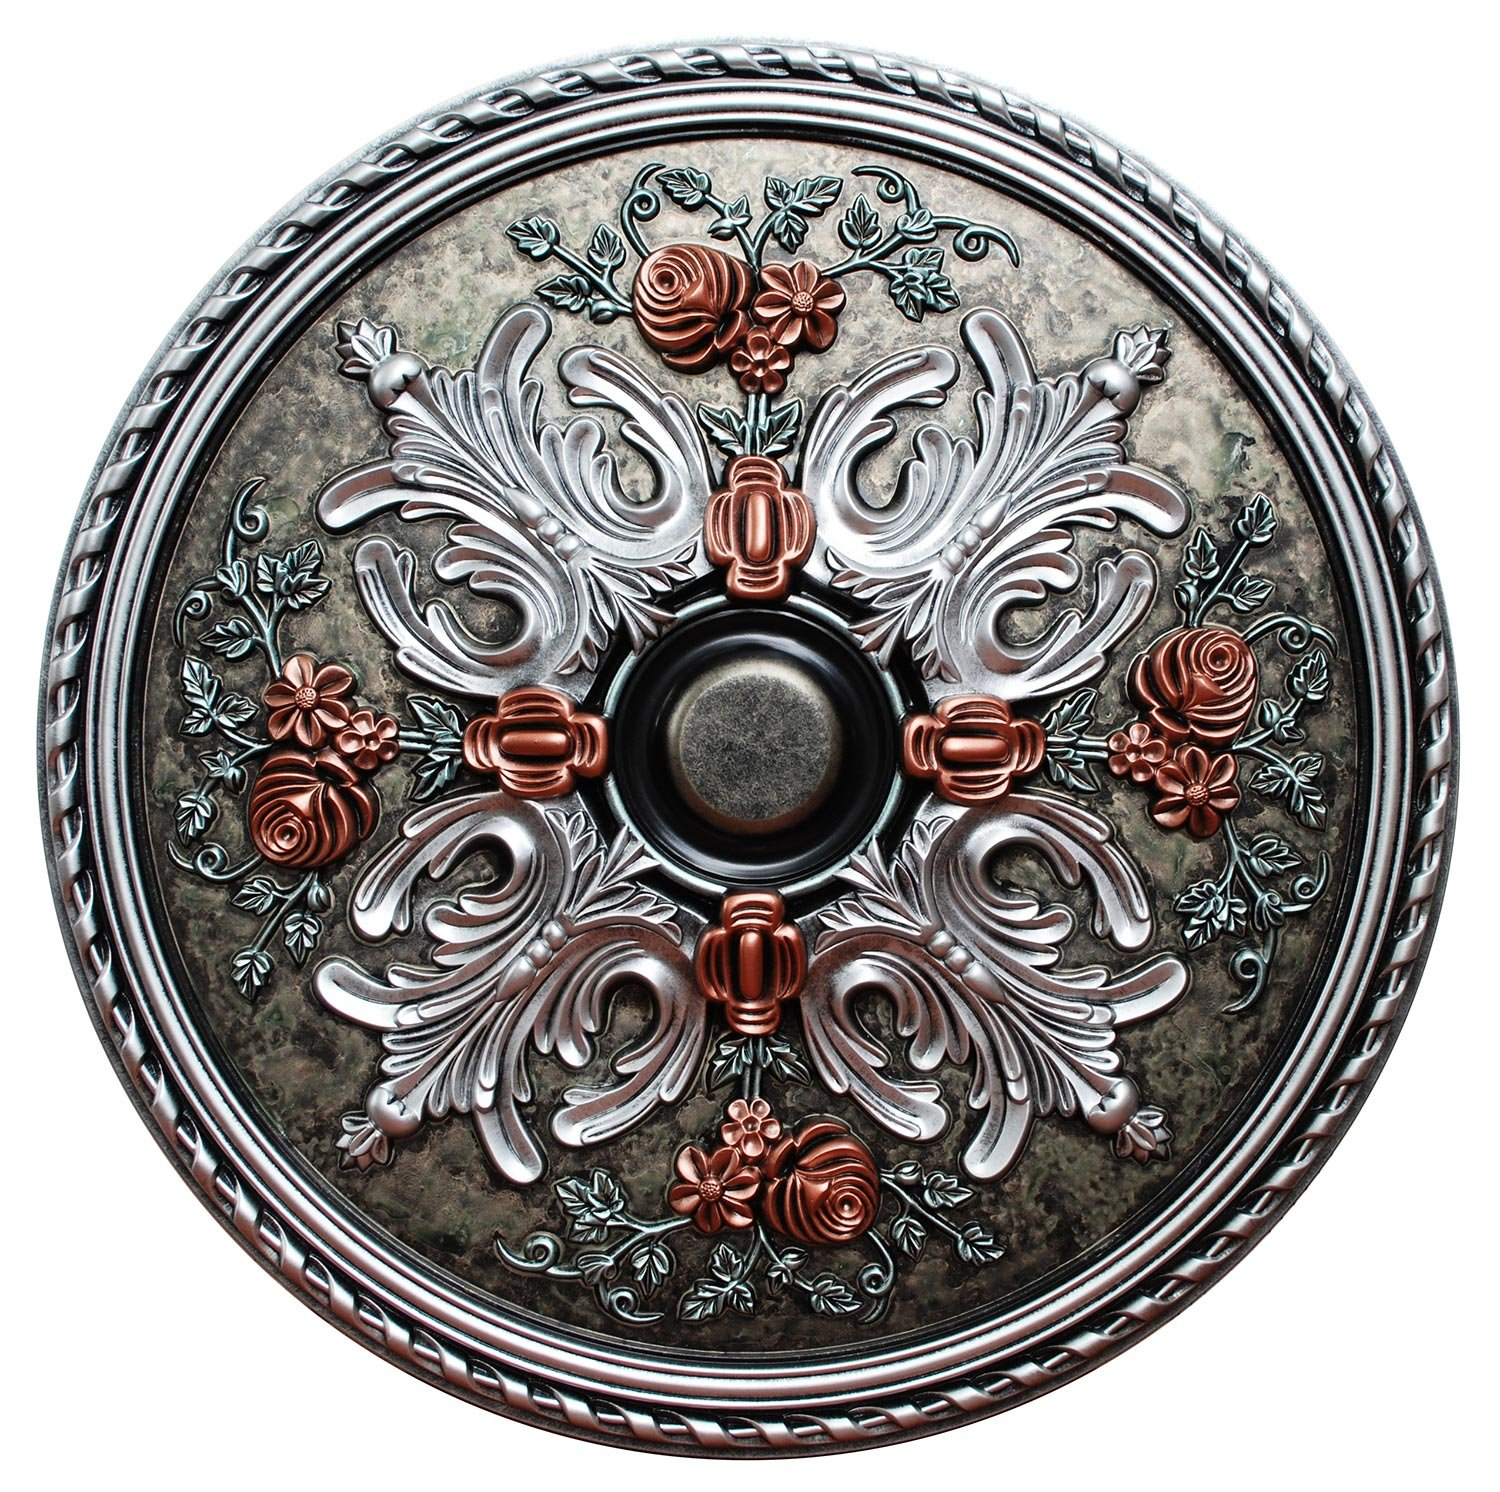 Fine Art Deco ''Winter Blossom'' Hand Painted Ceiling Medallion 32-3/4 In. Finished in Silver, Ivy, Teal and Copper Penny